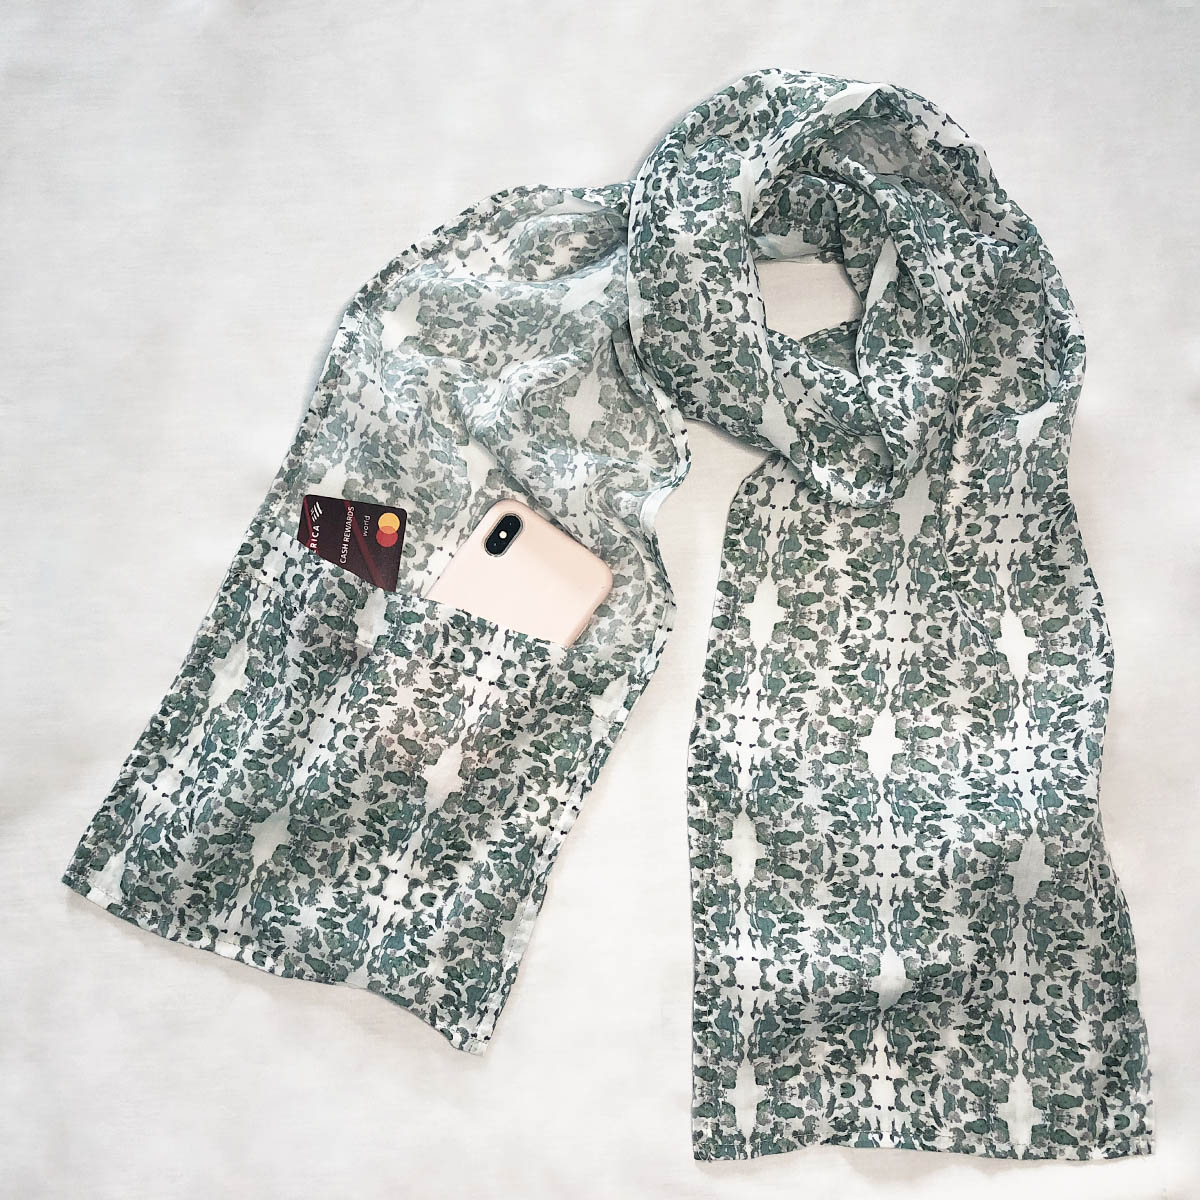 covid-19 scarf with pockets